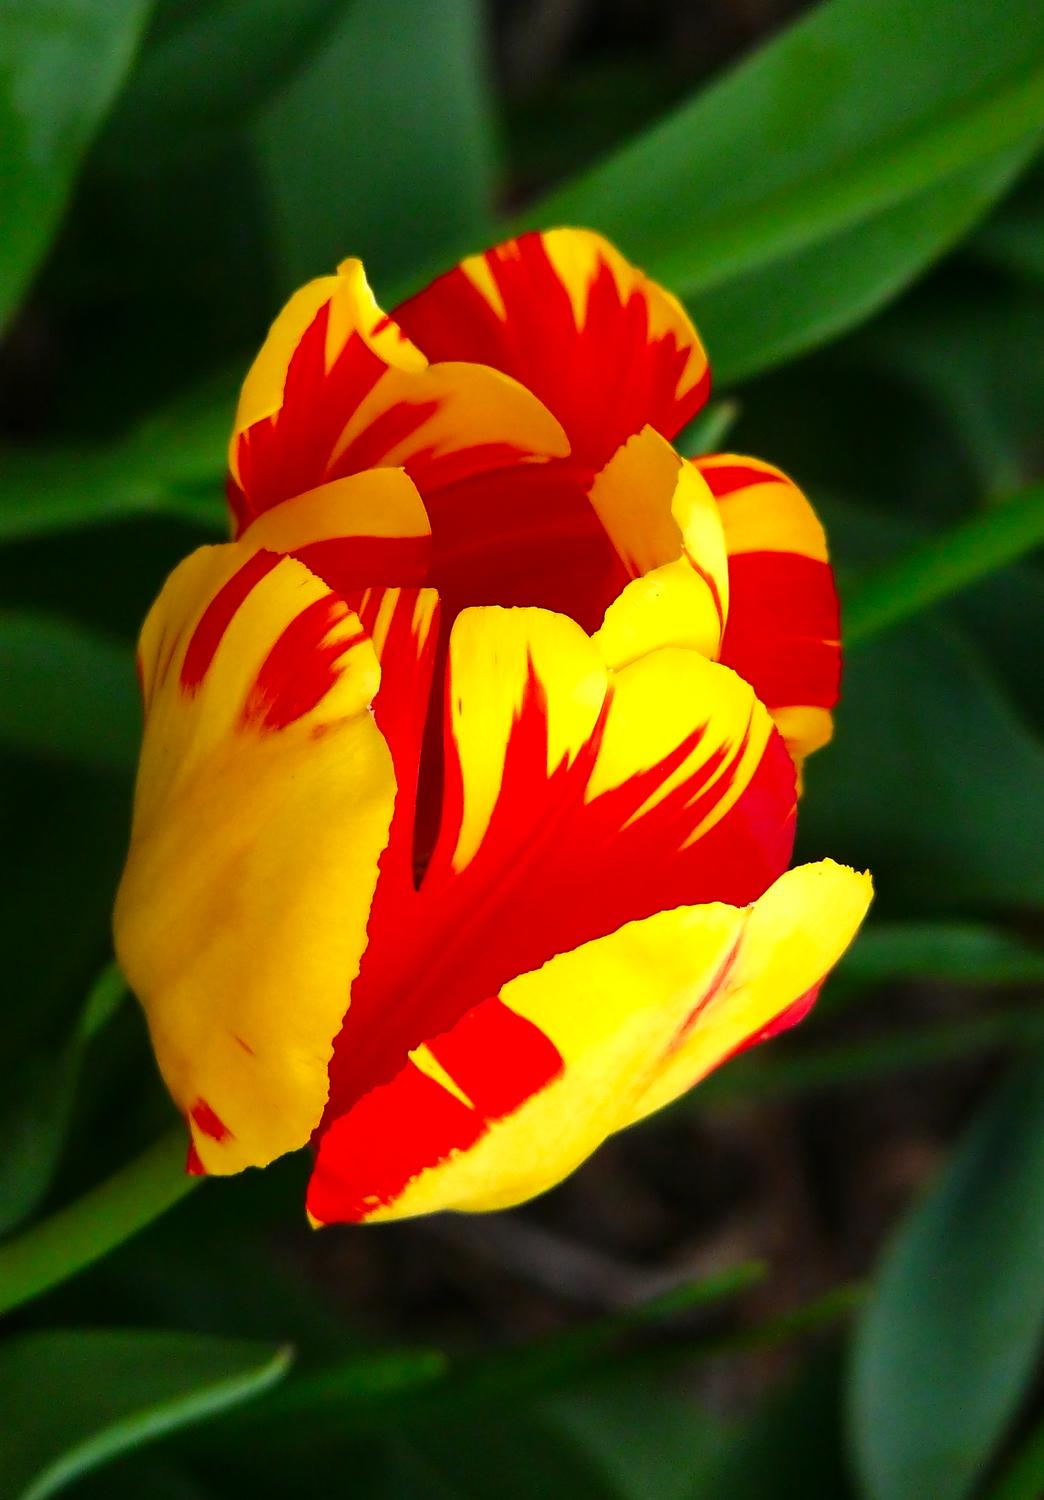 glorious red and yellow tulip background subdued - Nature - such a precious gift - Techno-Impressionist Museum - Techno-Impressionism - art - beautiful - photo photography picture - by Tony Karp